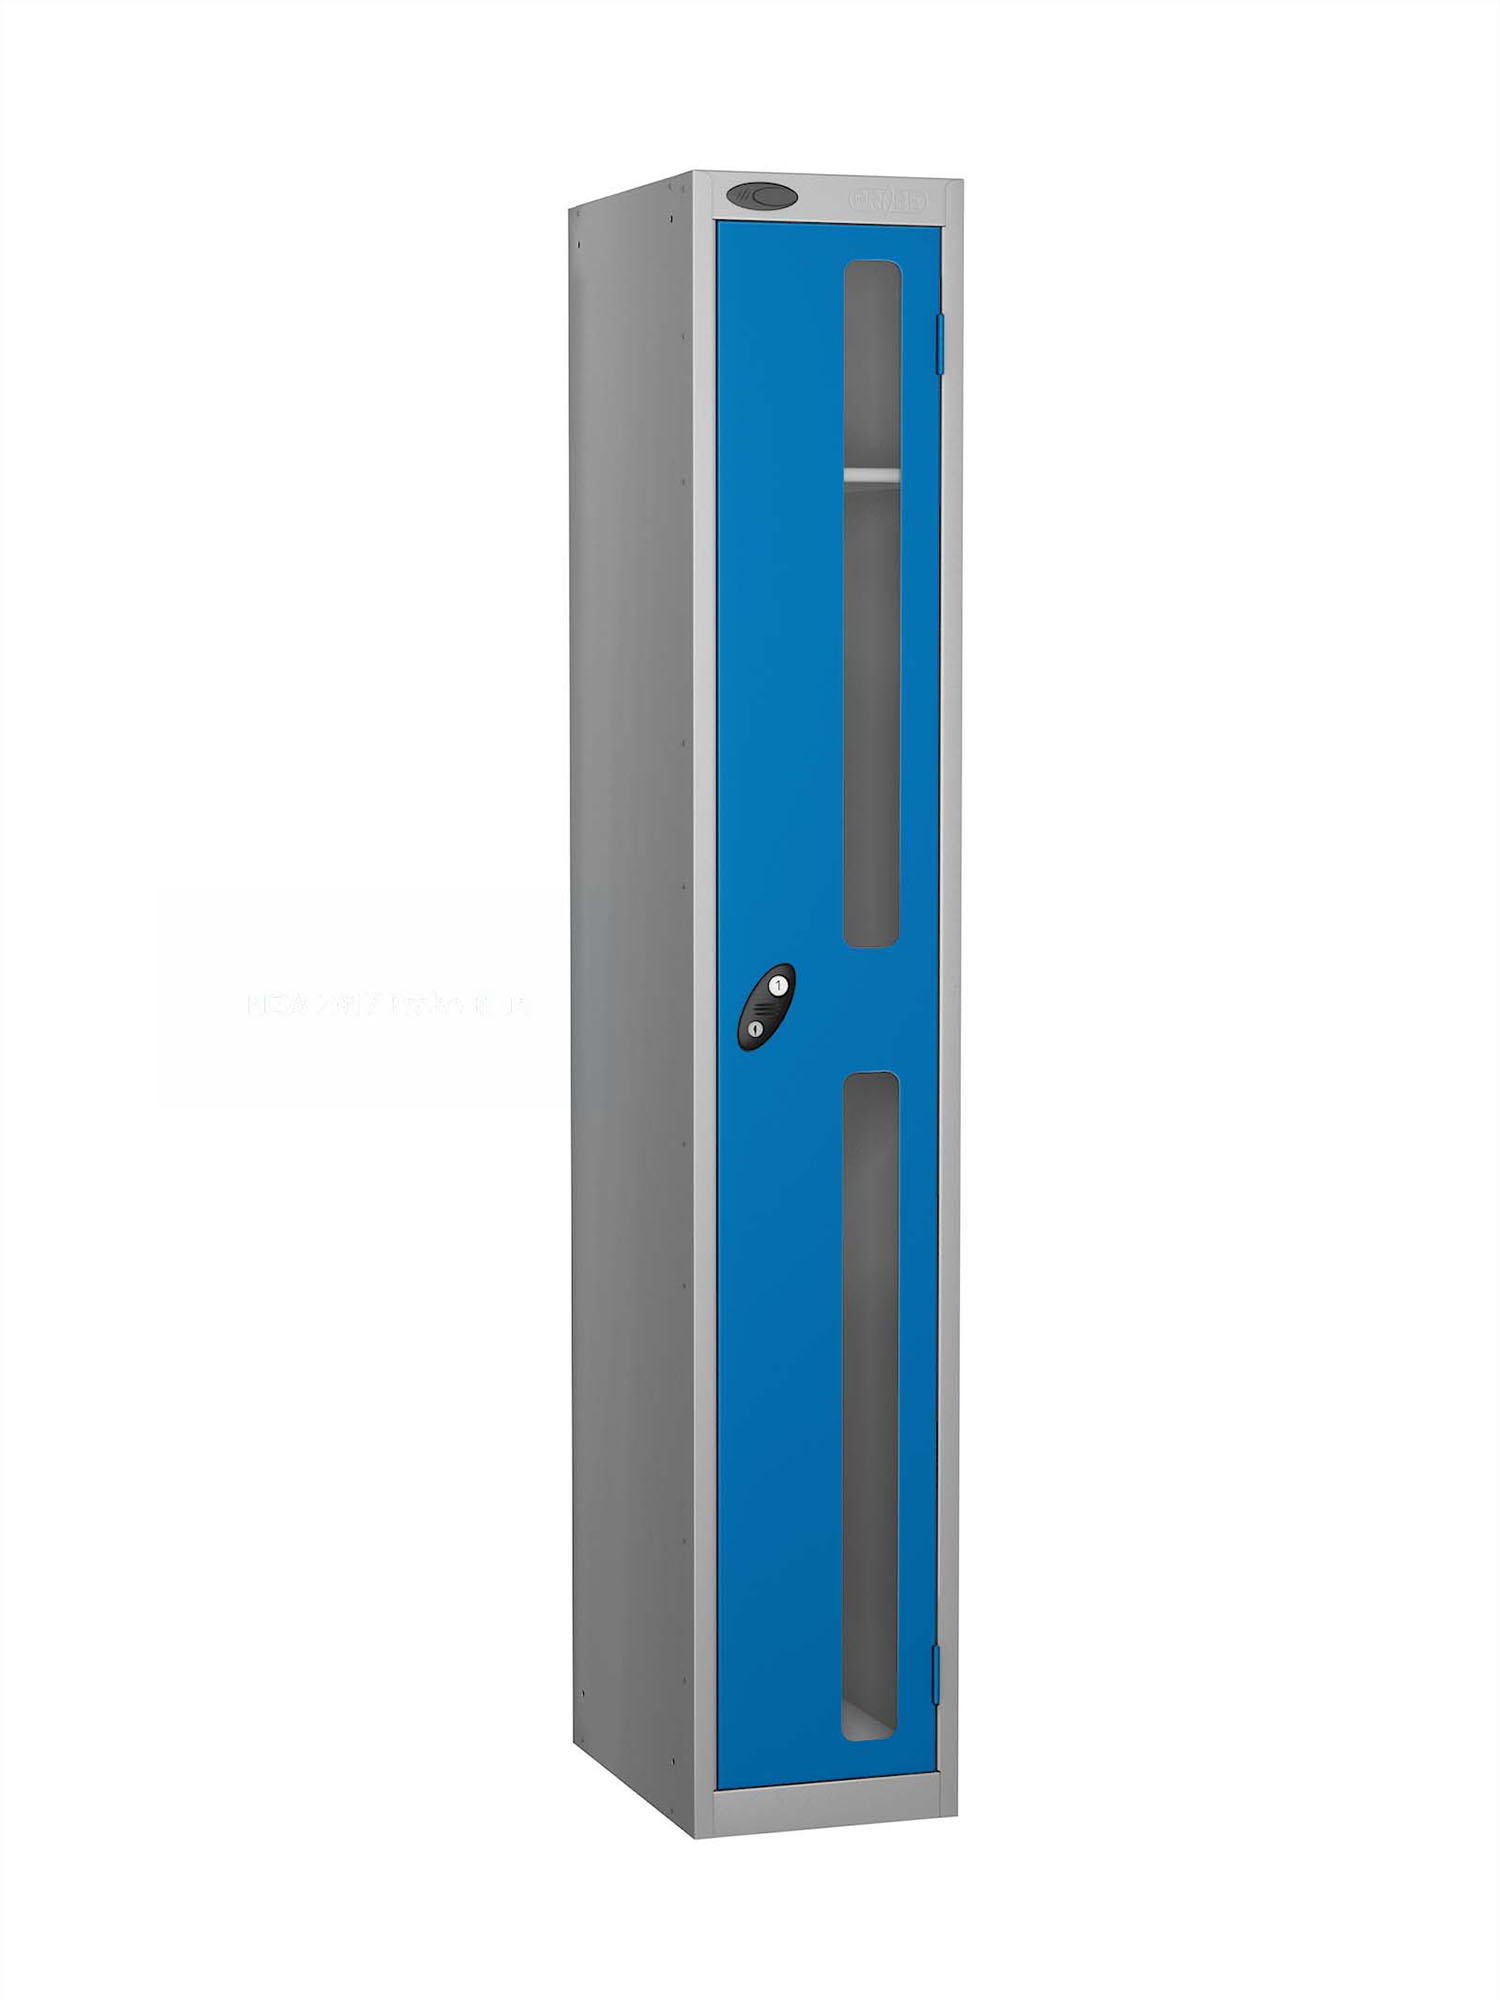 Probe 1 door vision panel anti-stock theft locker blue